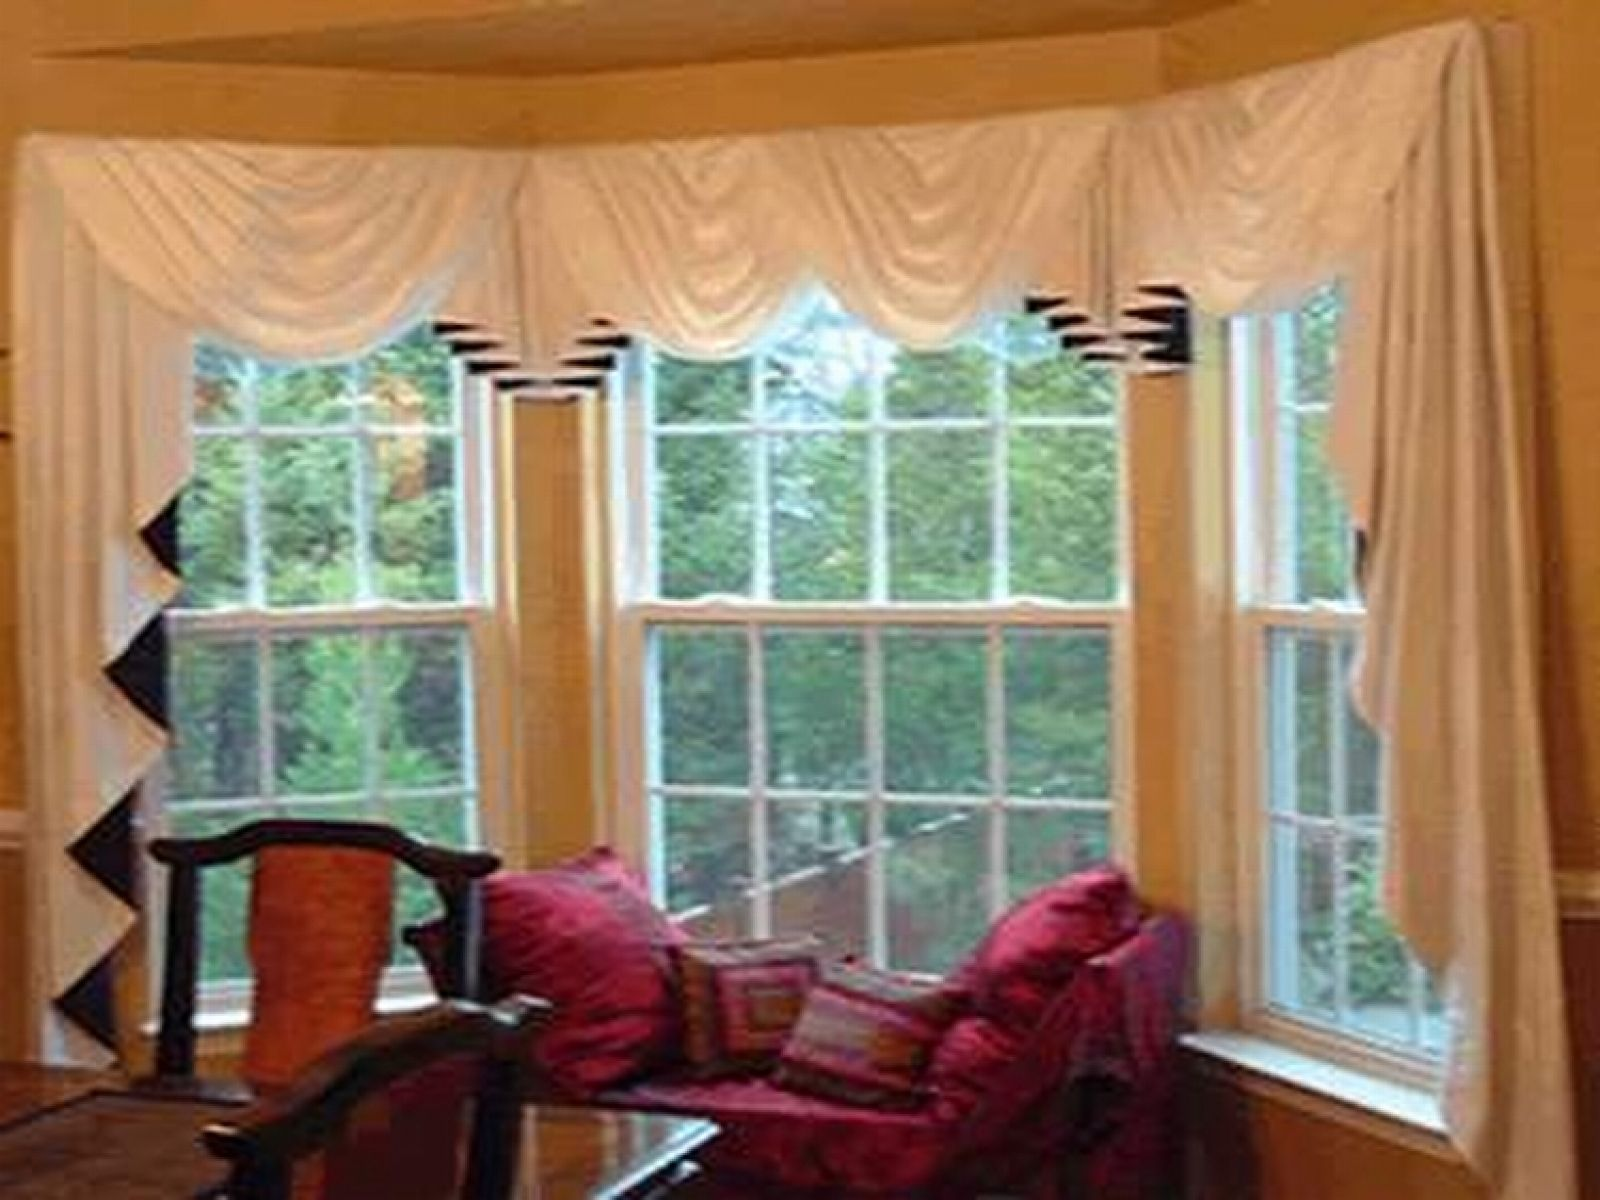 Curtain Rods For Bay Windows Australia And Cafe Curtain Rods For